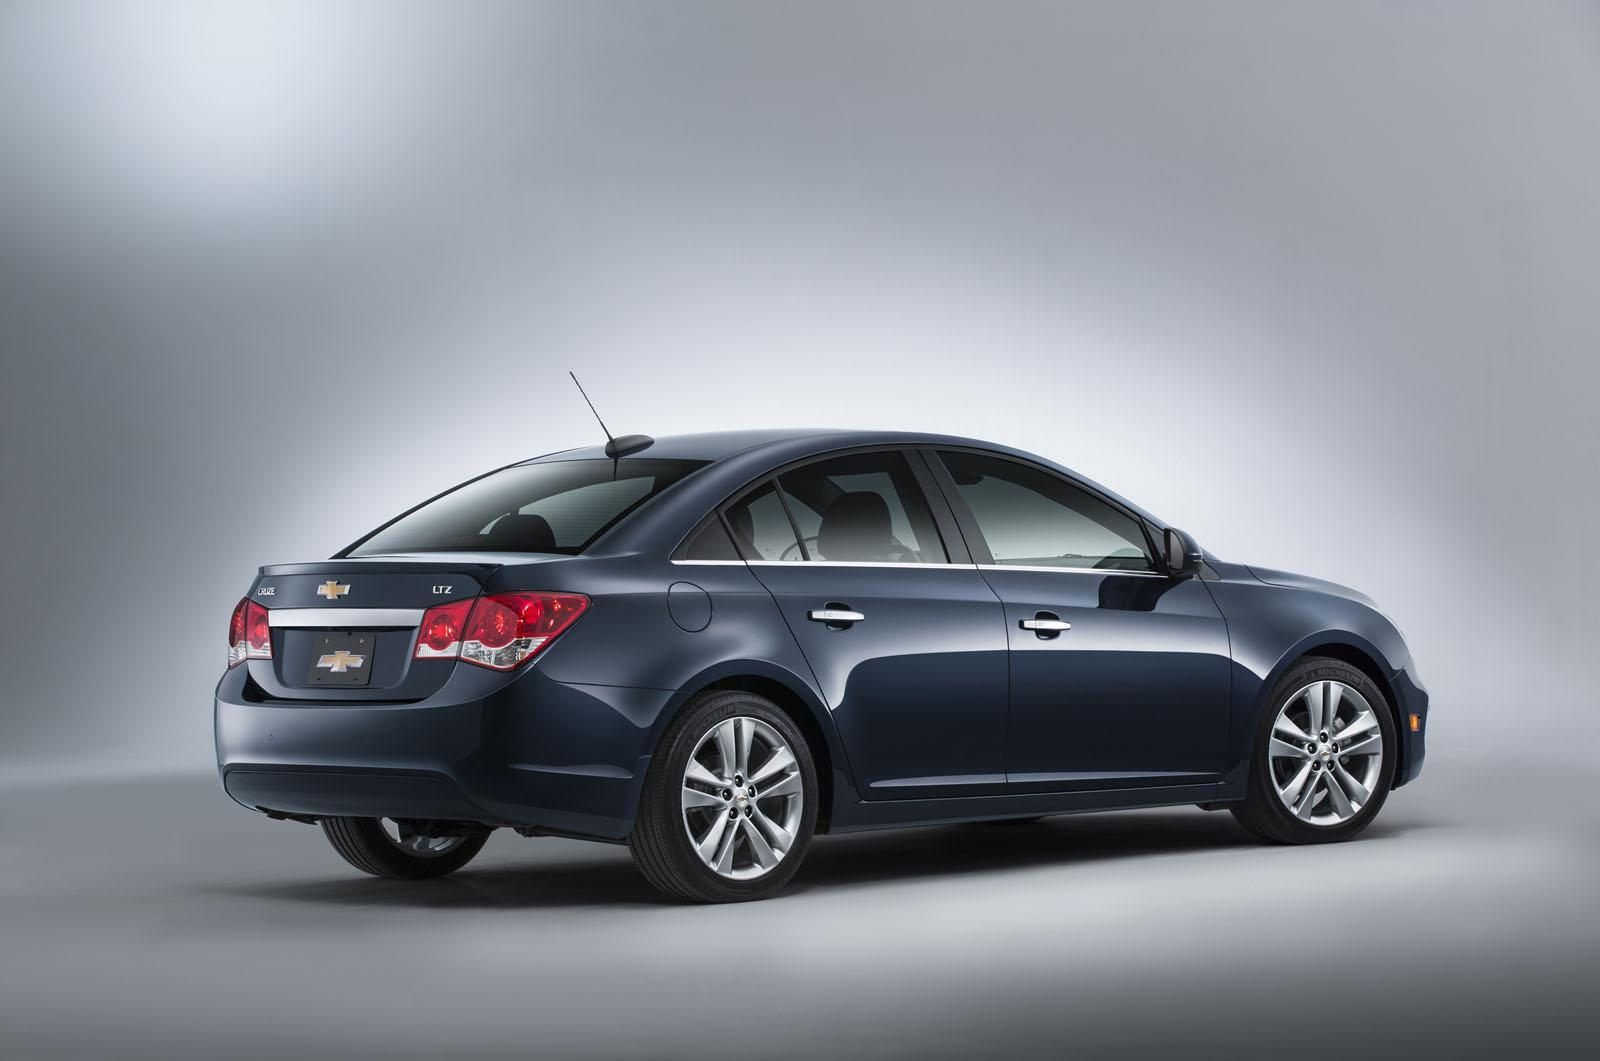 chevrolet cars news 2015 face lifted cruze unveiled. Black Bedroom Furniture Sets. Home Design Ideas